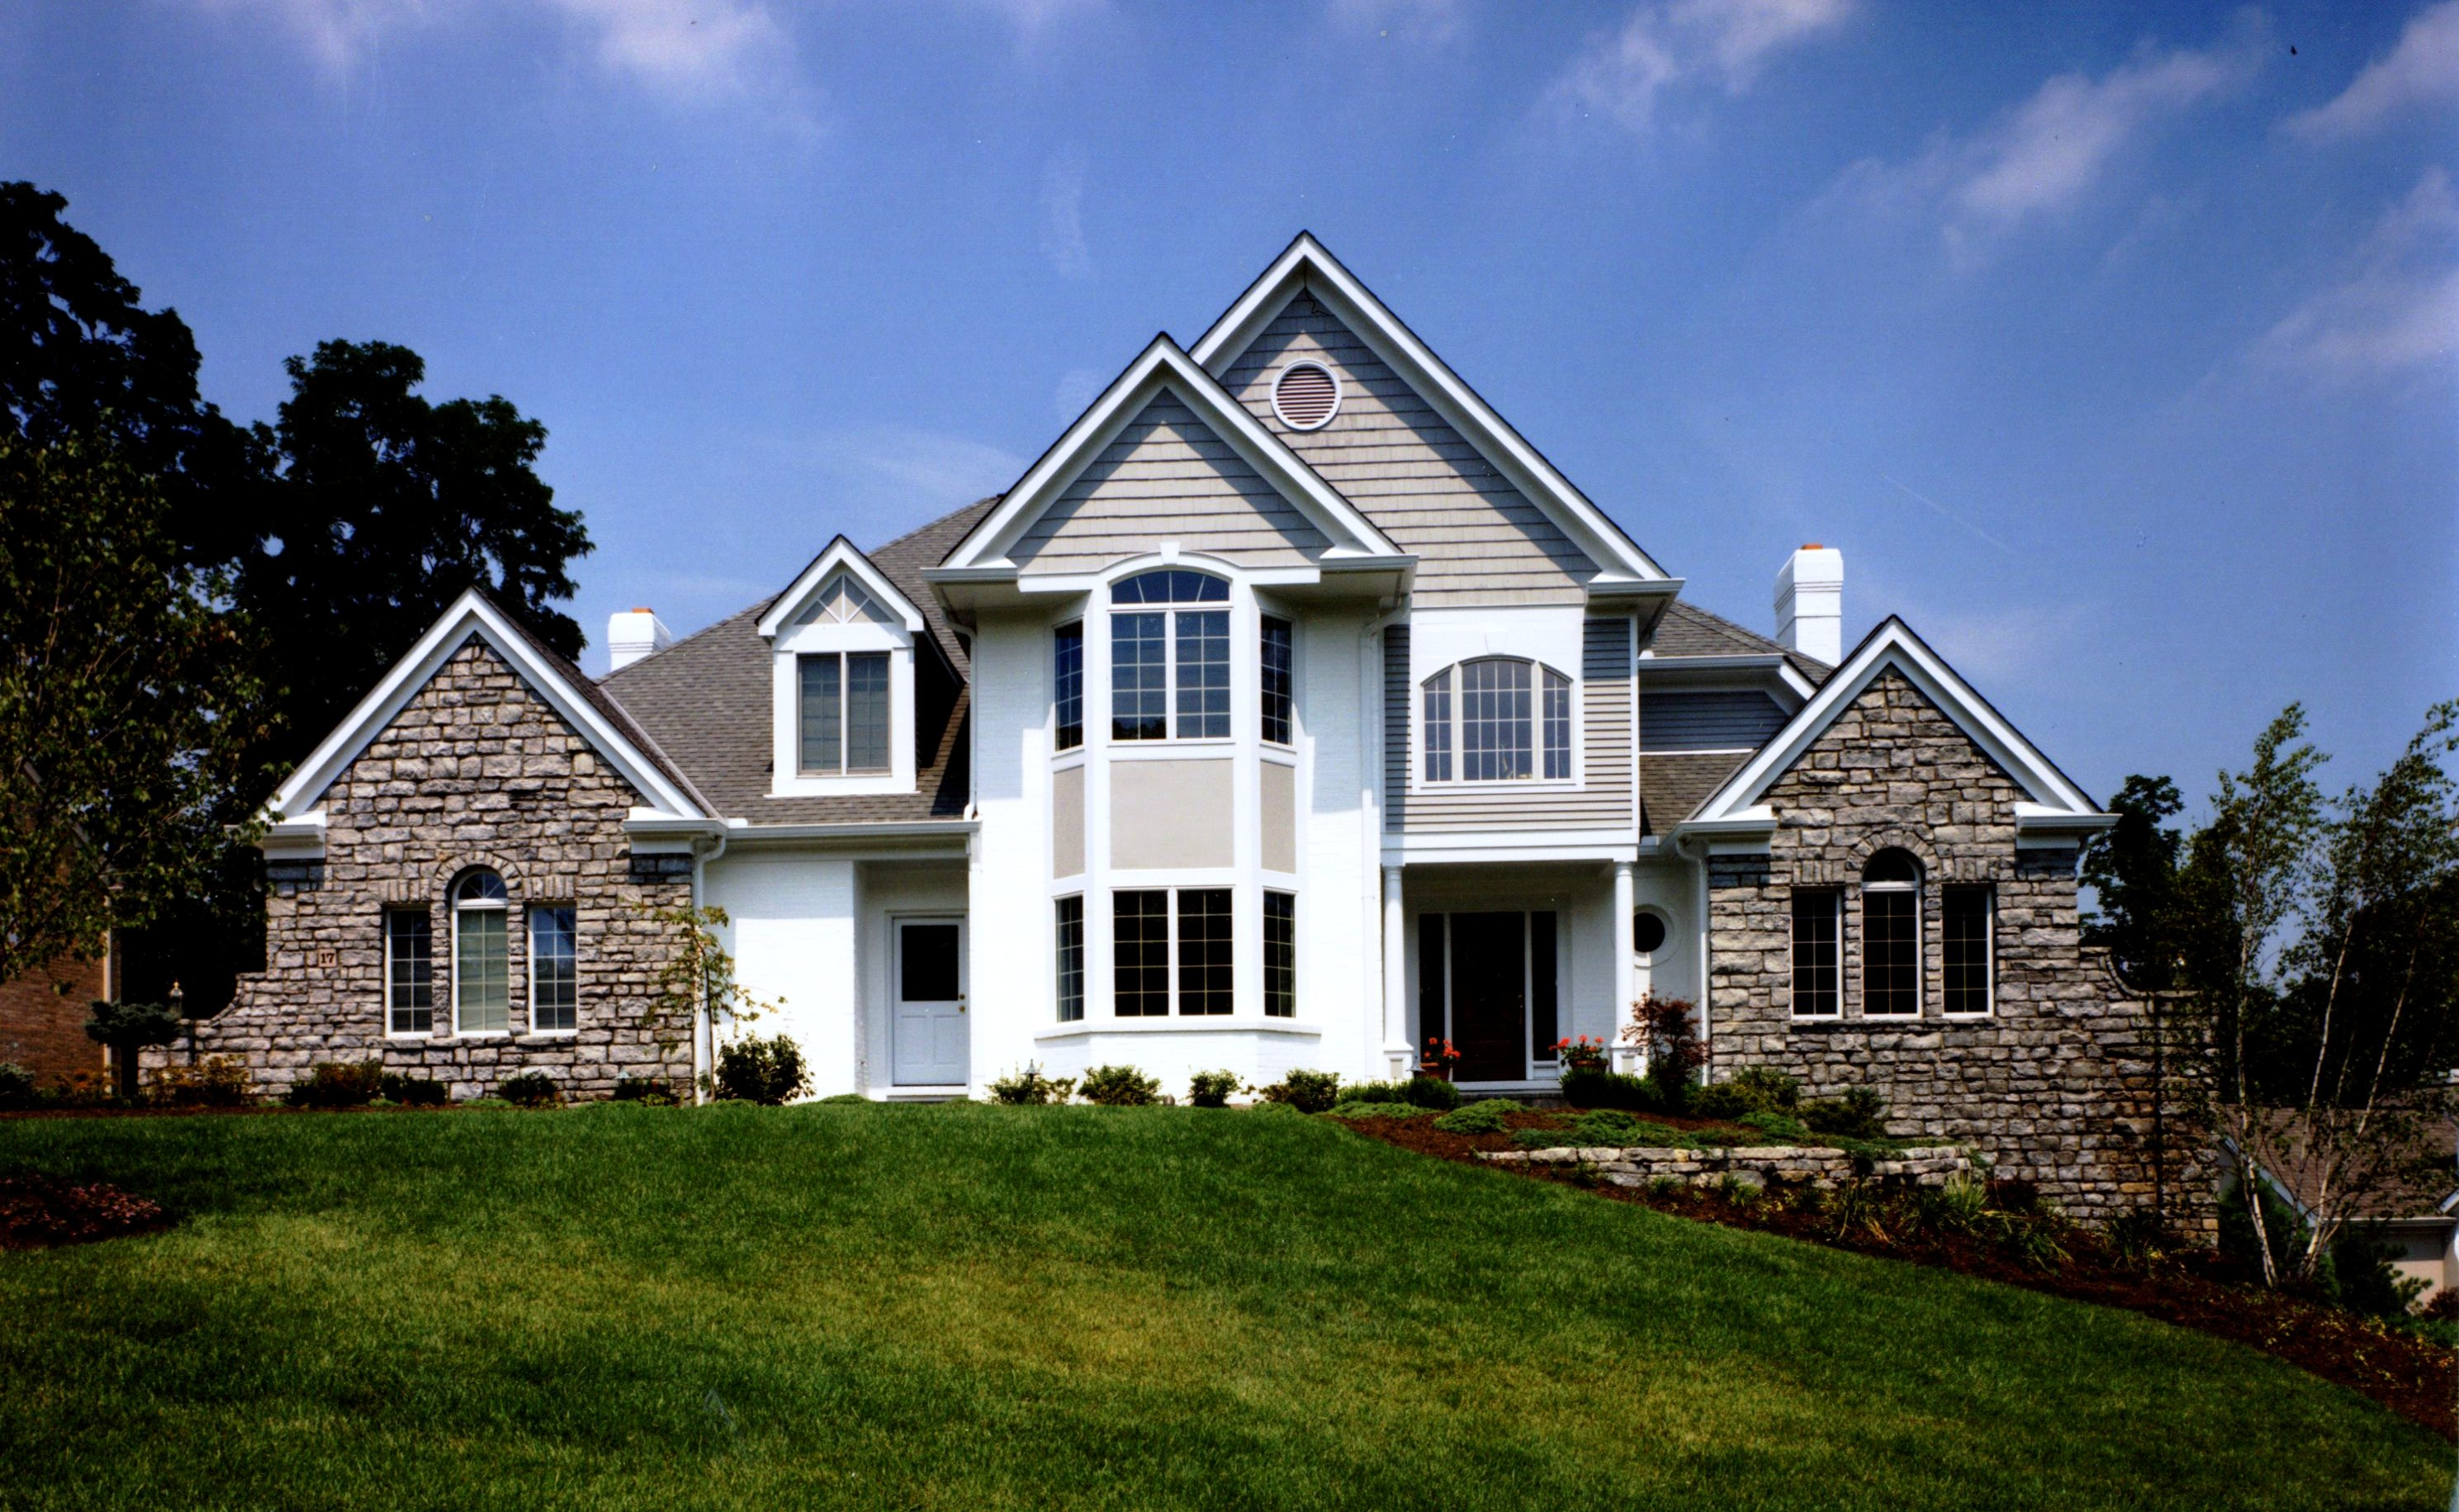 build a home in liberty township sibcy cline blog